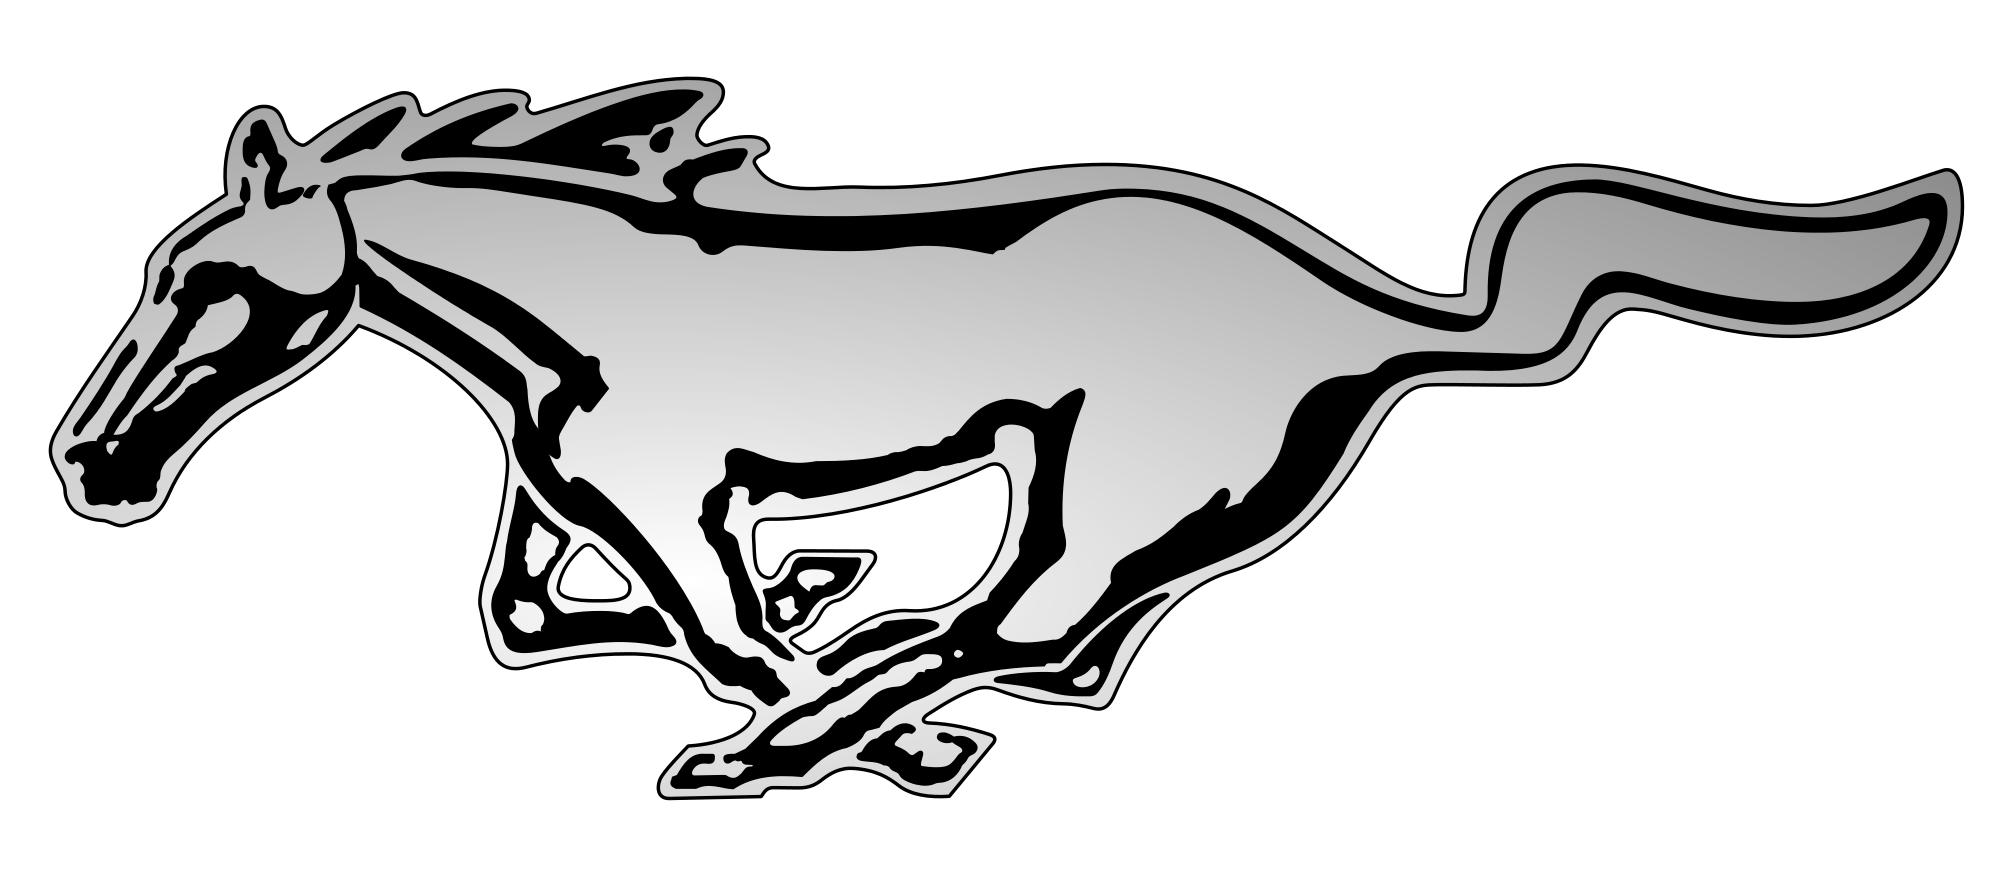 Ford mustang logo clipart free svg free download Ford Mustang Logo Drawing at PaintingValley.com | Explore collection ... svg free download